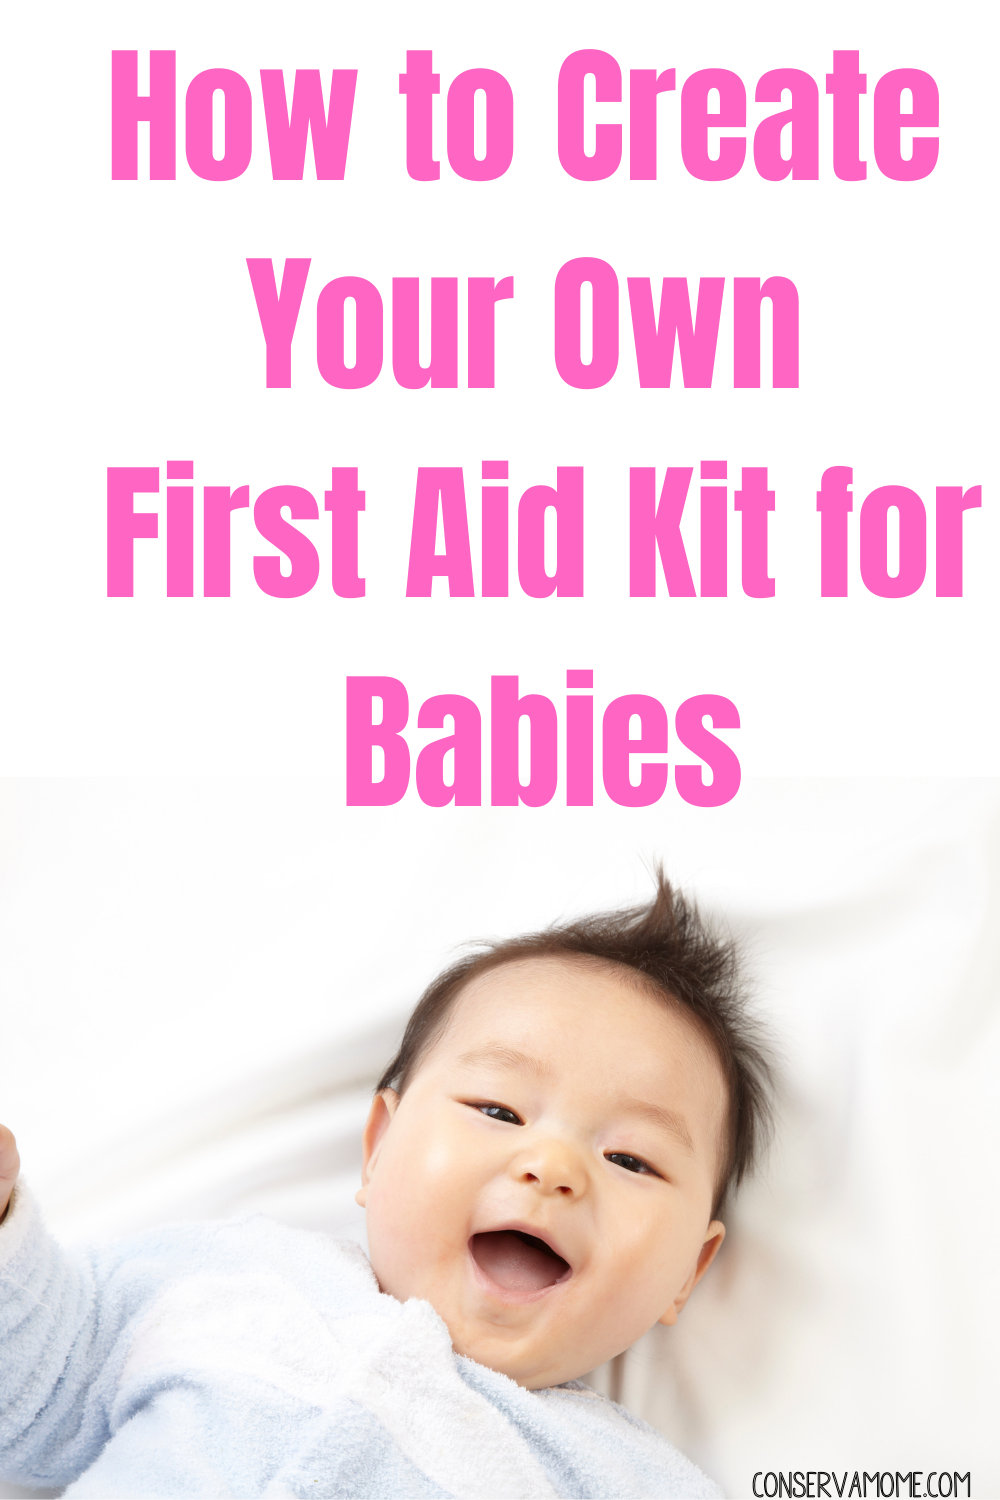 How to Create Your own First Aid Kit for babies